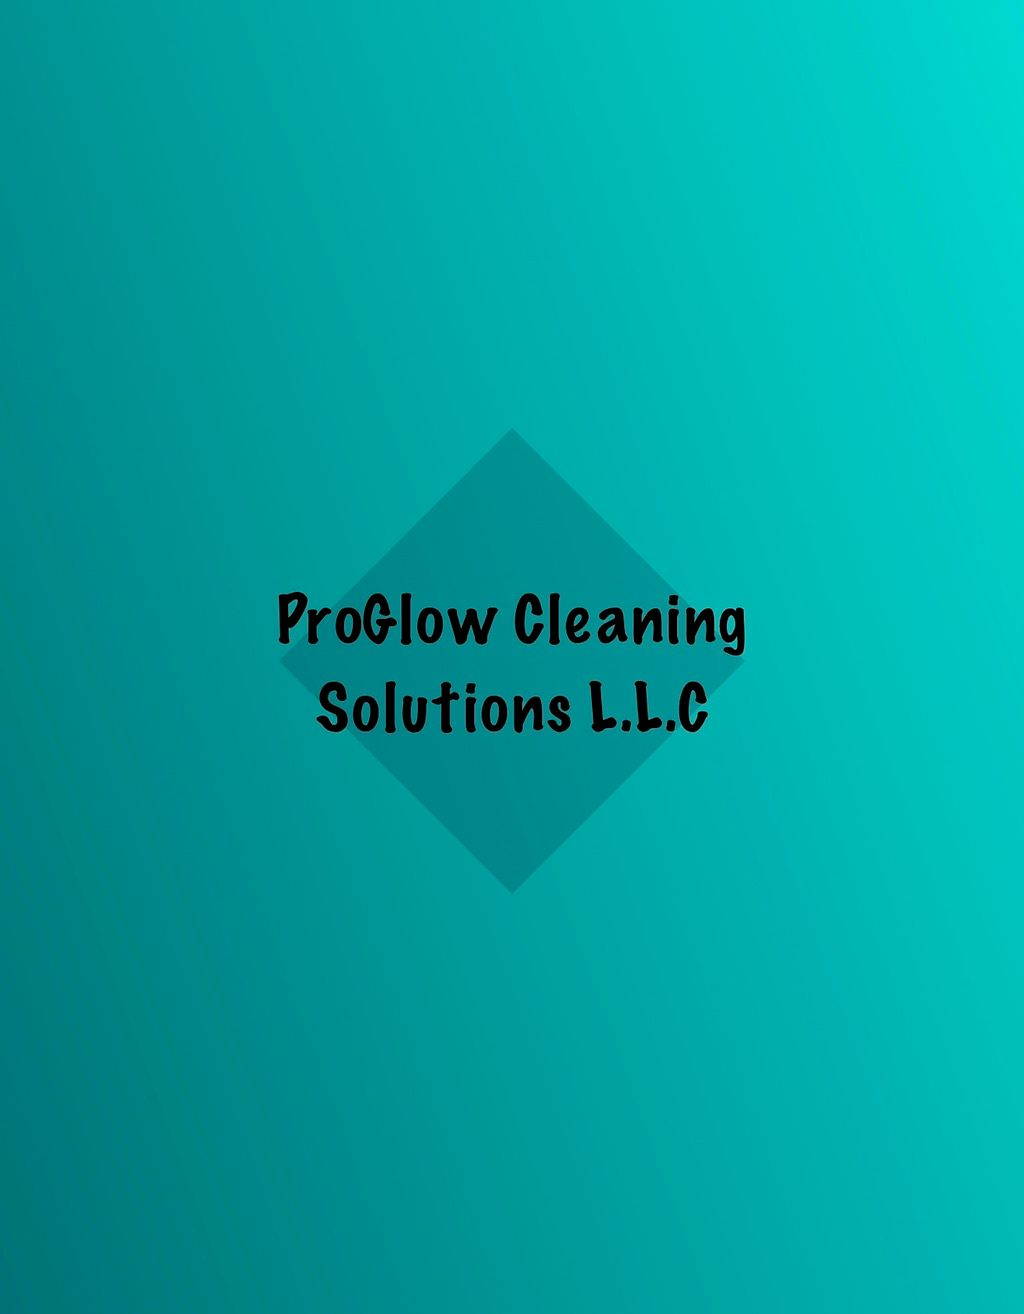 ProGlow Cleaning Solutions